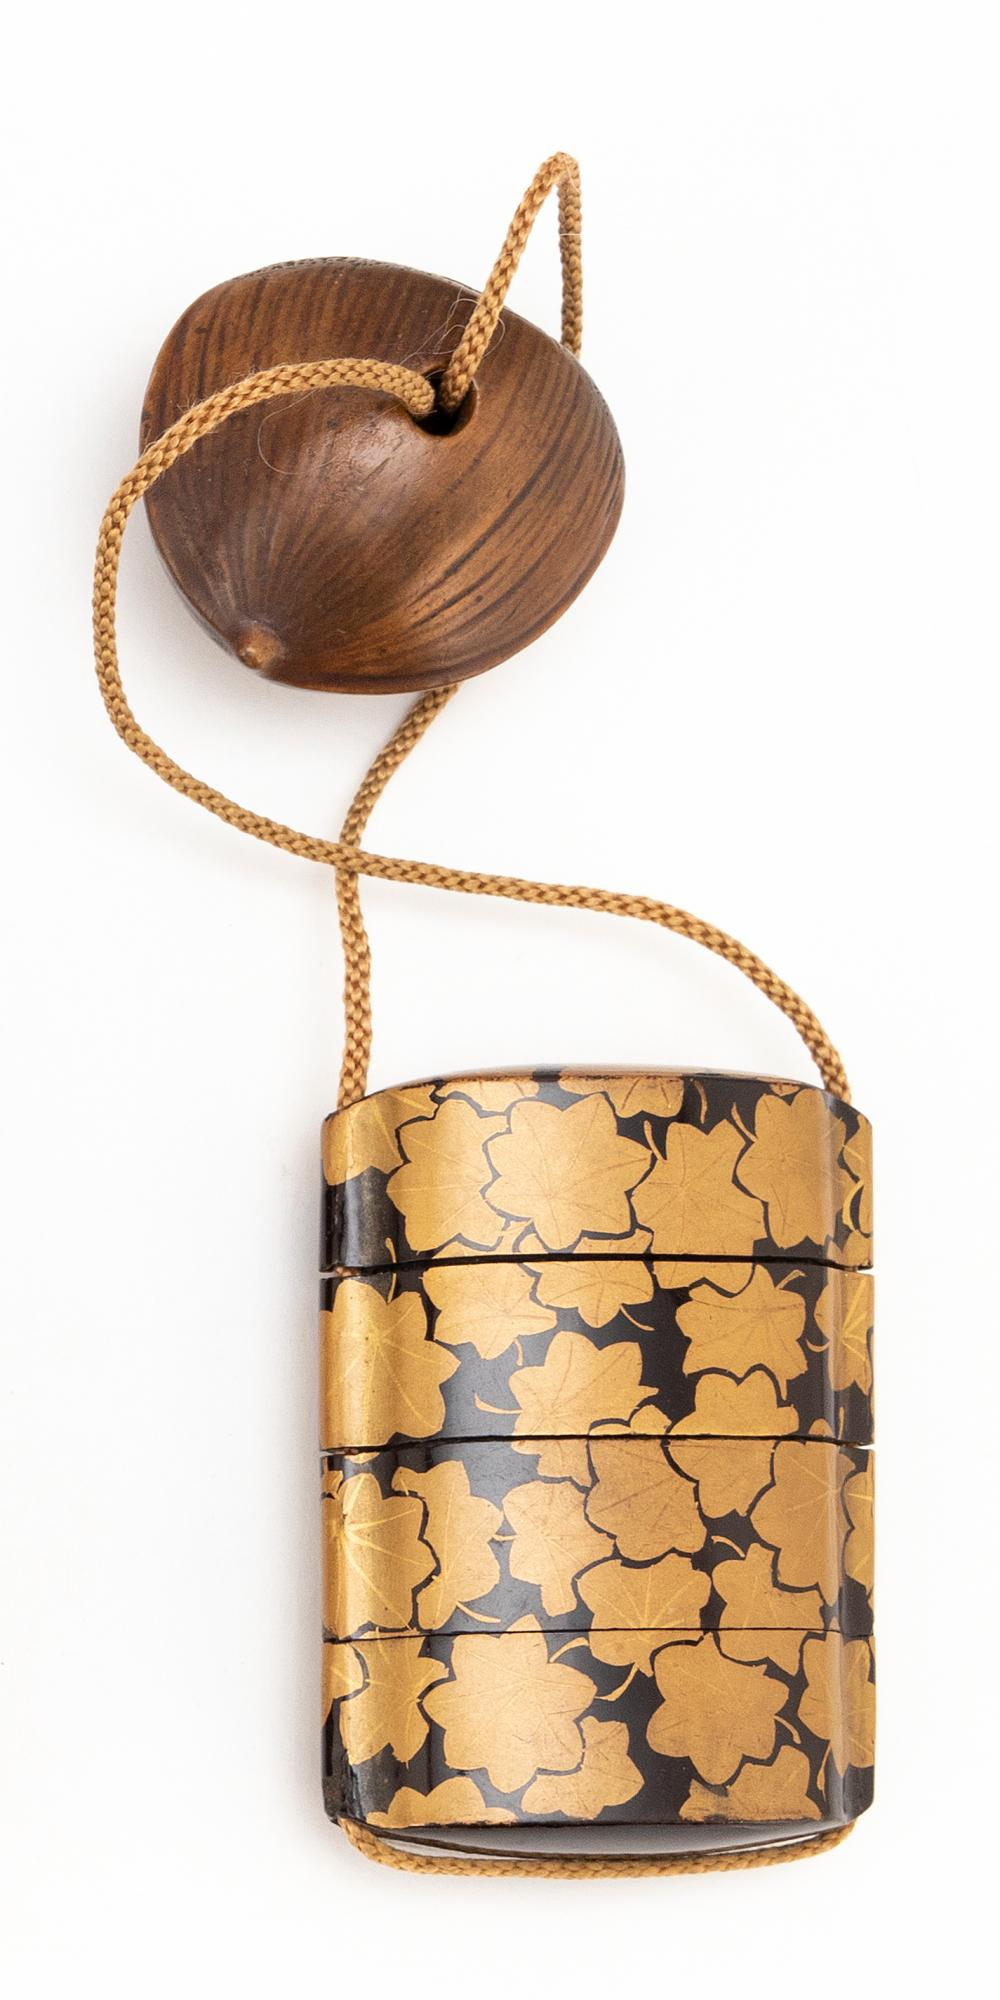 JAPANESE FOUR-CASE GOLD AND BLACK LACQUER INRO Gilt maple leaf design on a black ground. Length 2.75